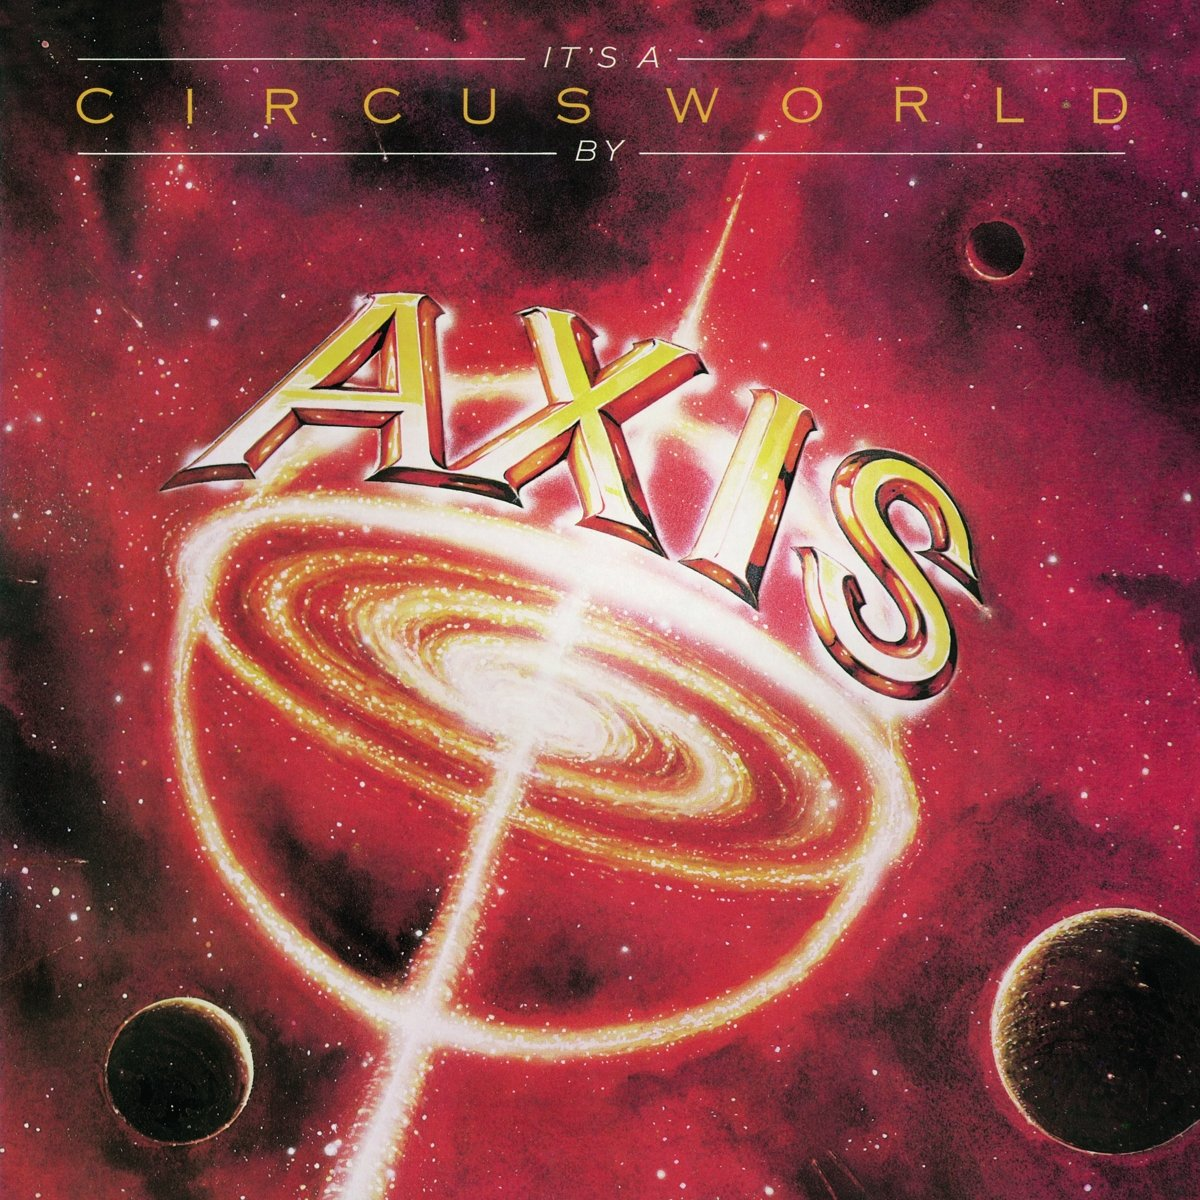 CD : Axis - It's A Circus World (Deluxe Edition, Collector's Edition, Remastered, United Kingdom - Import)